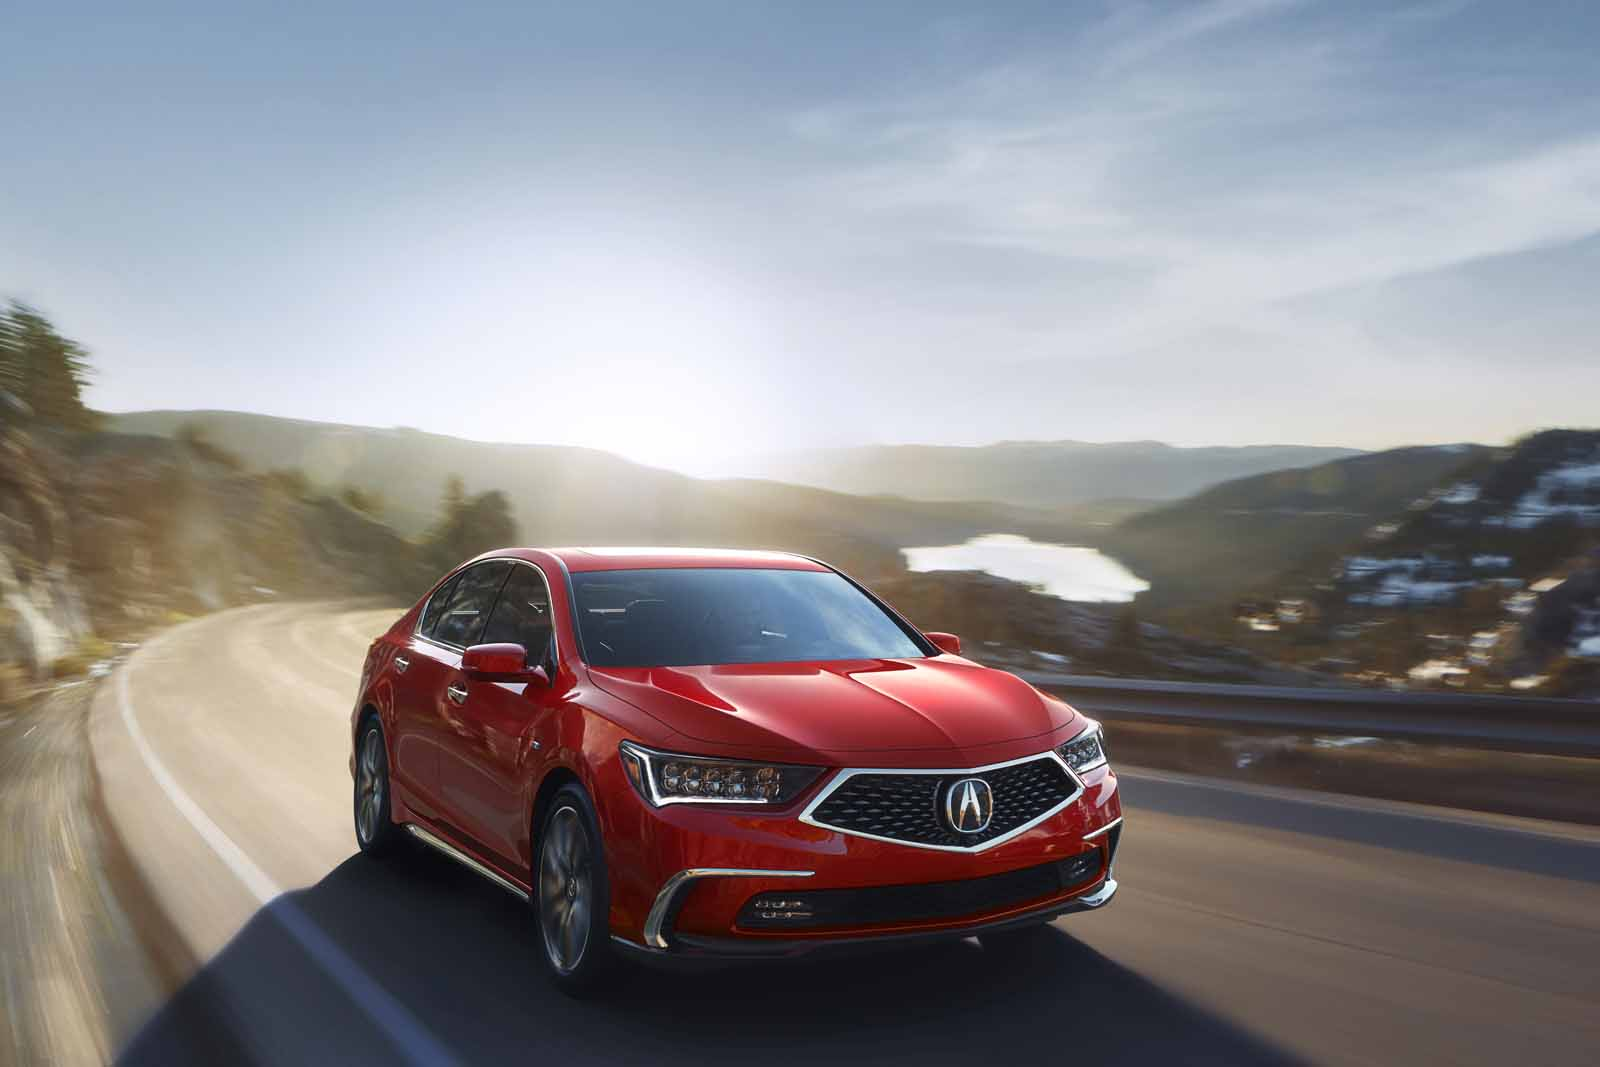 Acura RLX Revealed Ahead of Monterey Car Week Debut